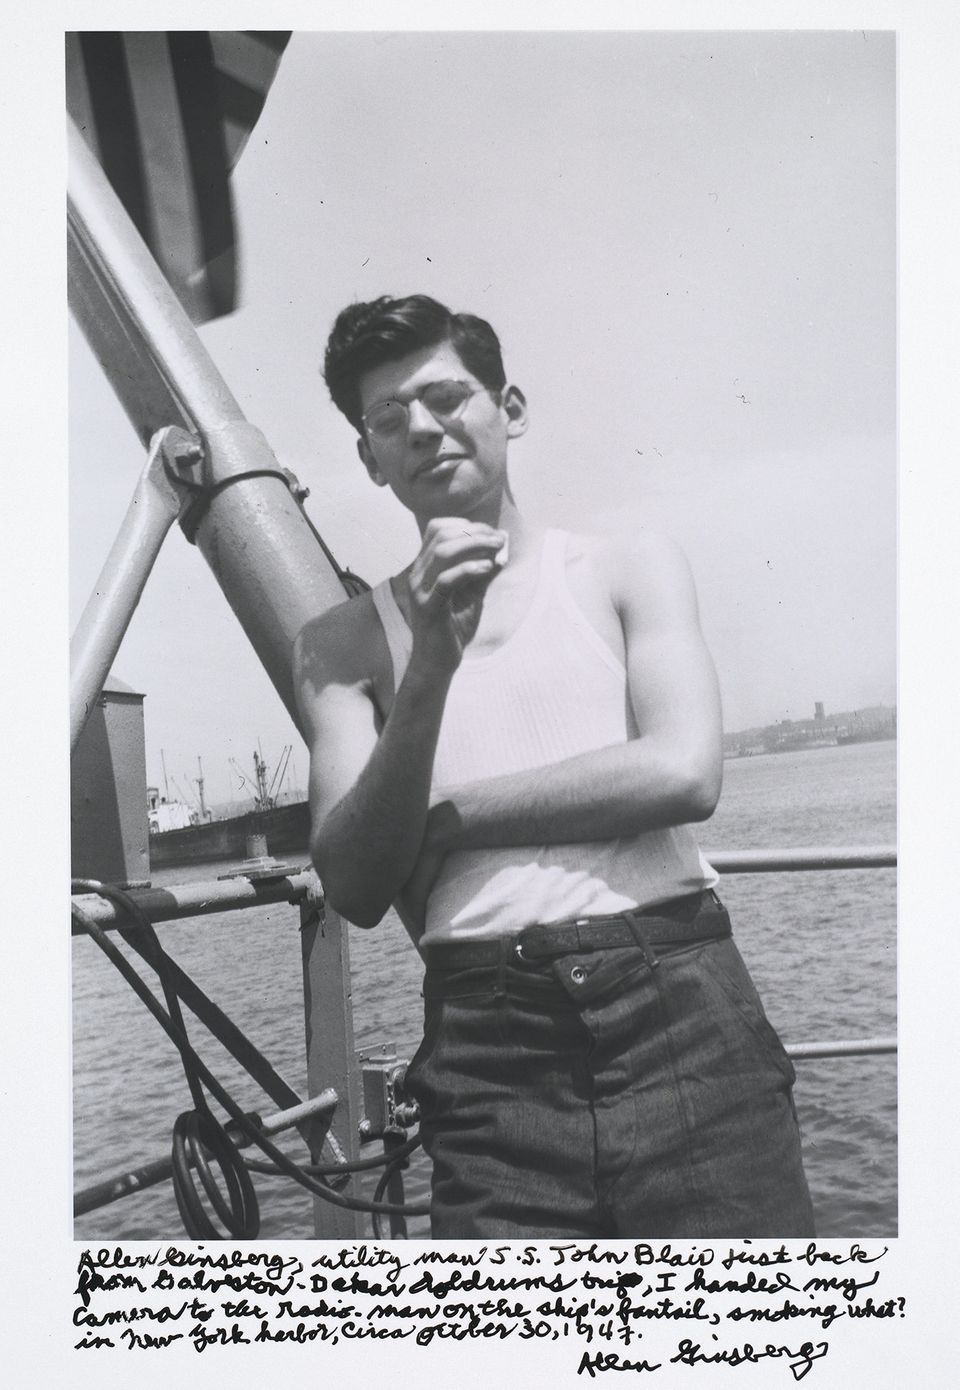 Allen Ginsberg, utility man S.S. John Blair just back from Galveston-Dakar doldrums trip...,1947.